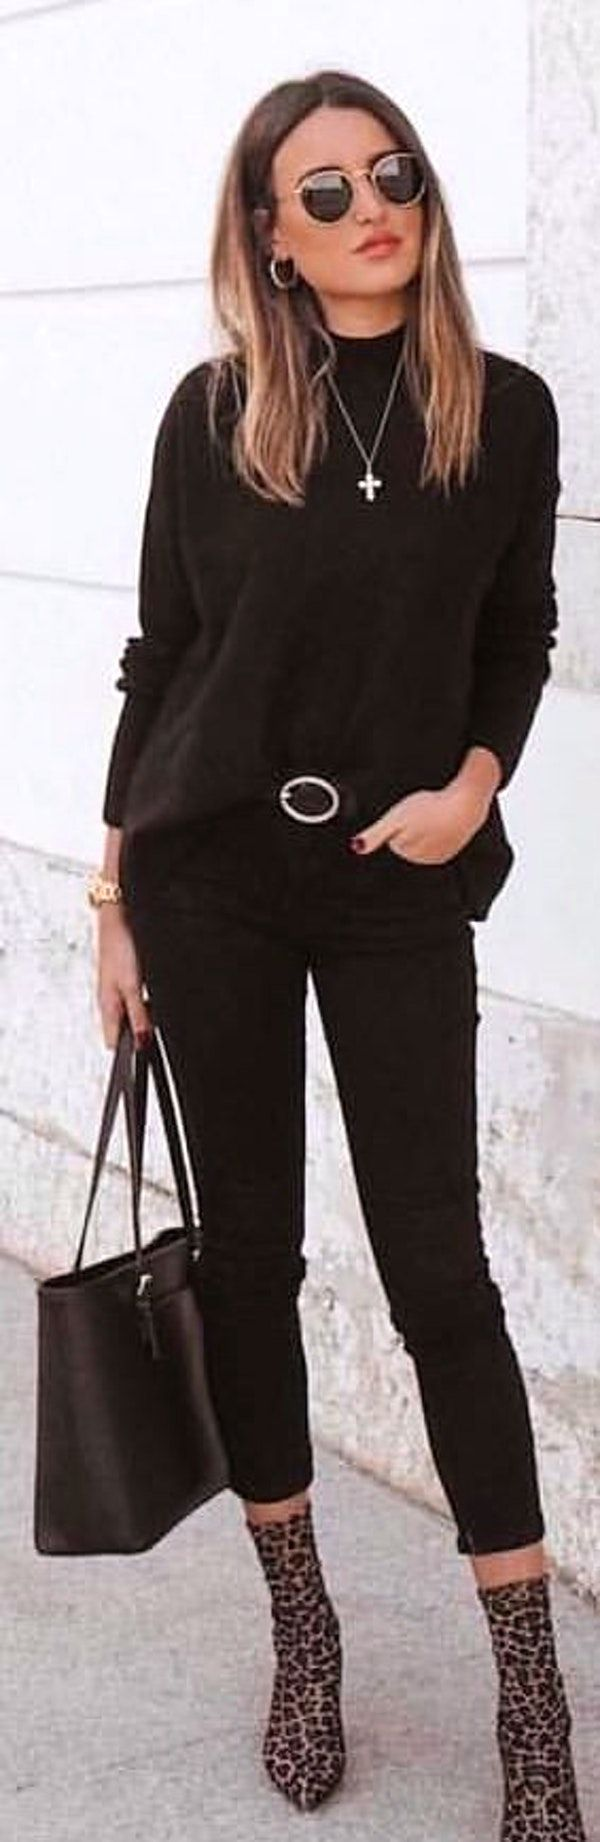 #spring #outfits woman in black crew-neck sweatshirt, black leggings, black leather tote bag and brown pointed-toe heels outfit. Pic by @ootdmagazine